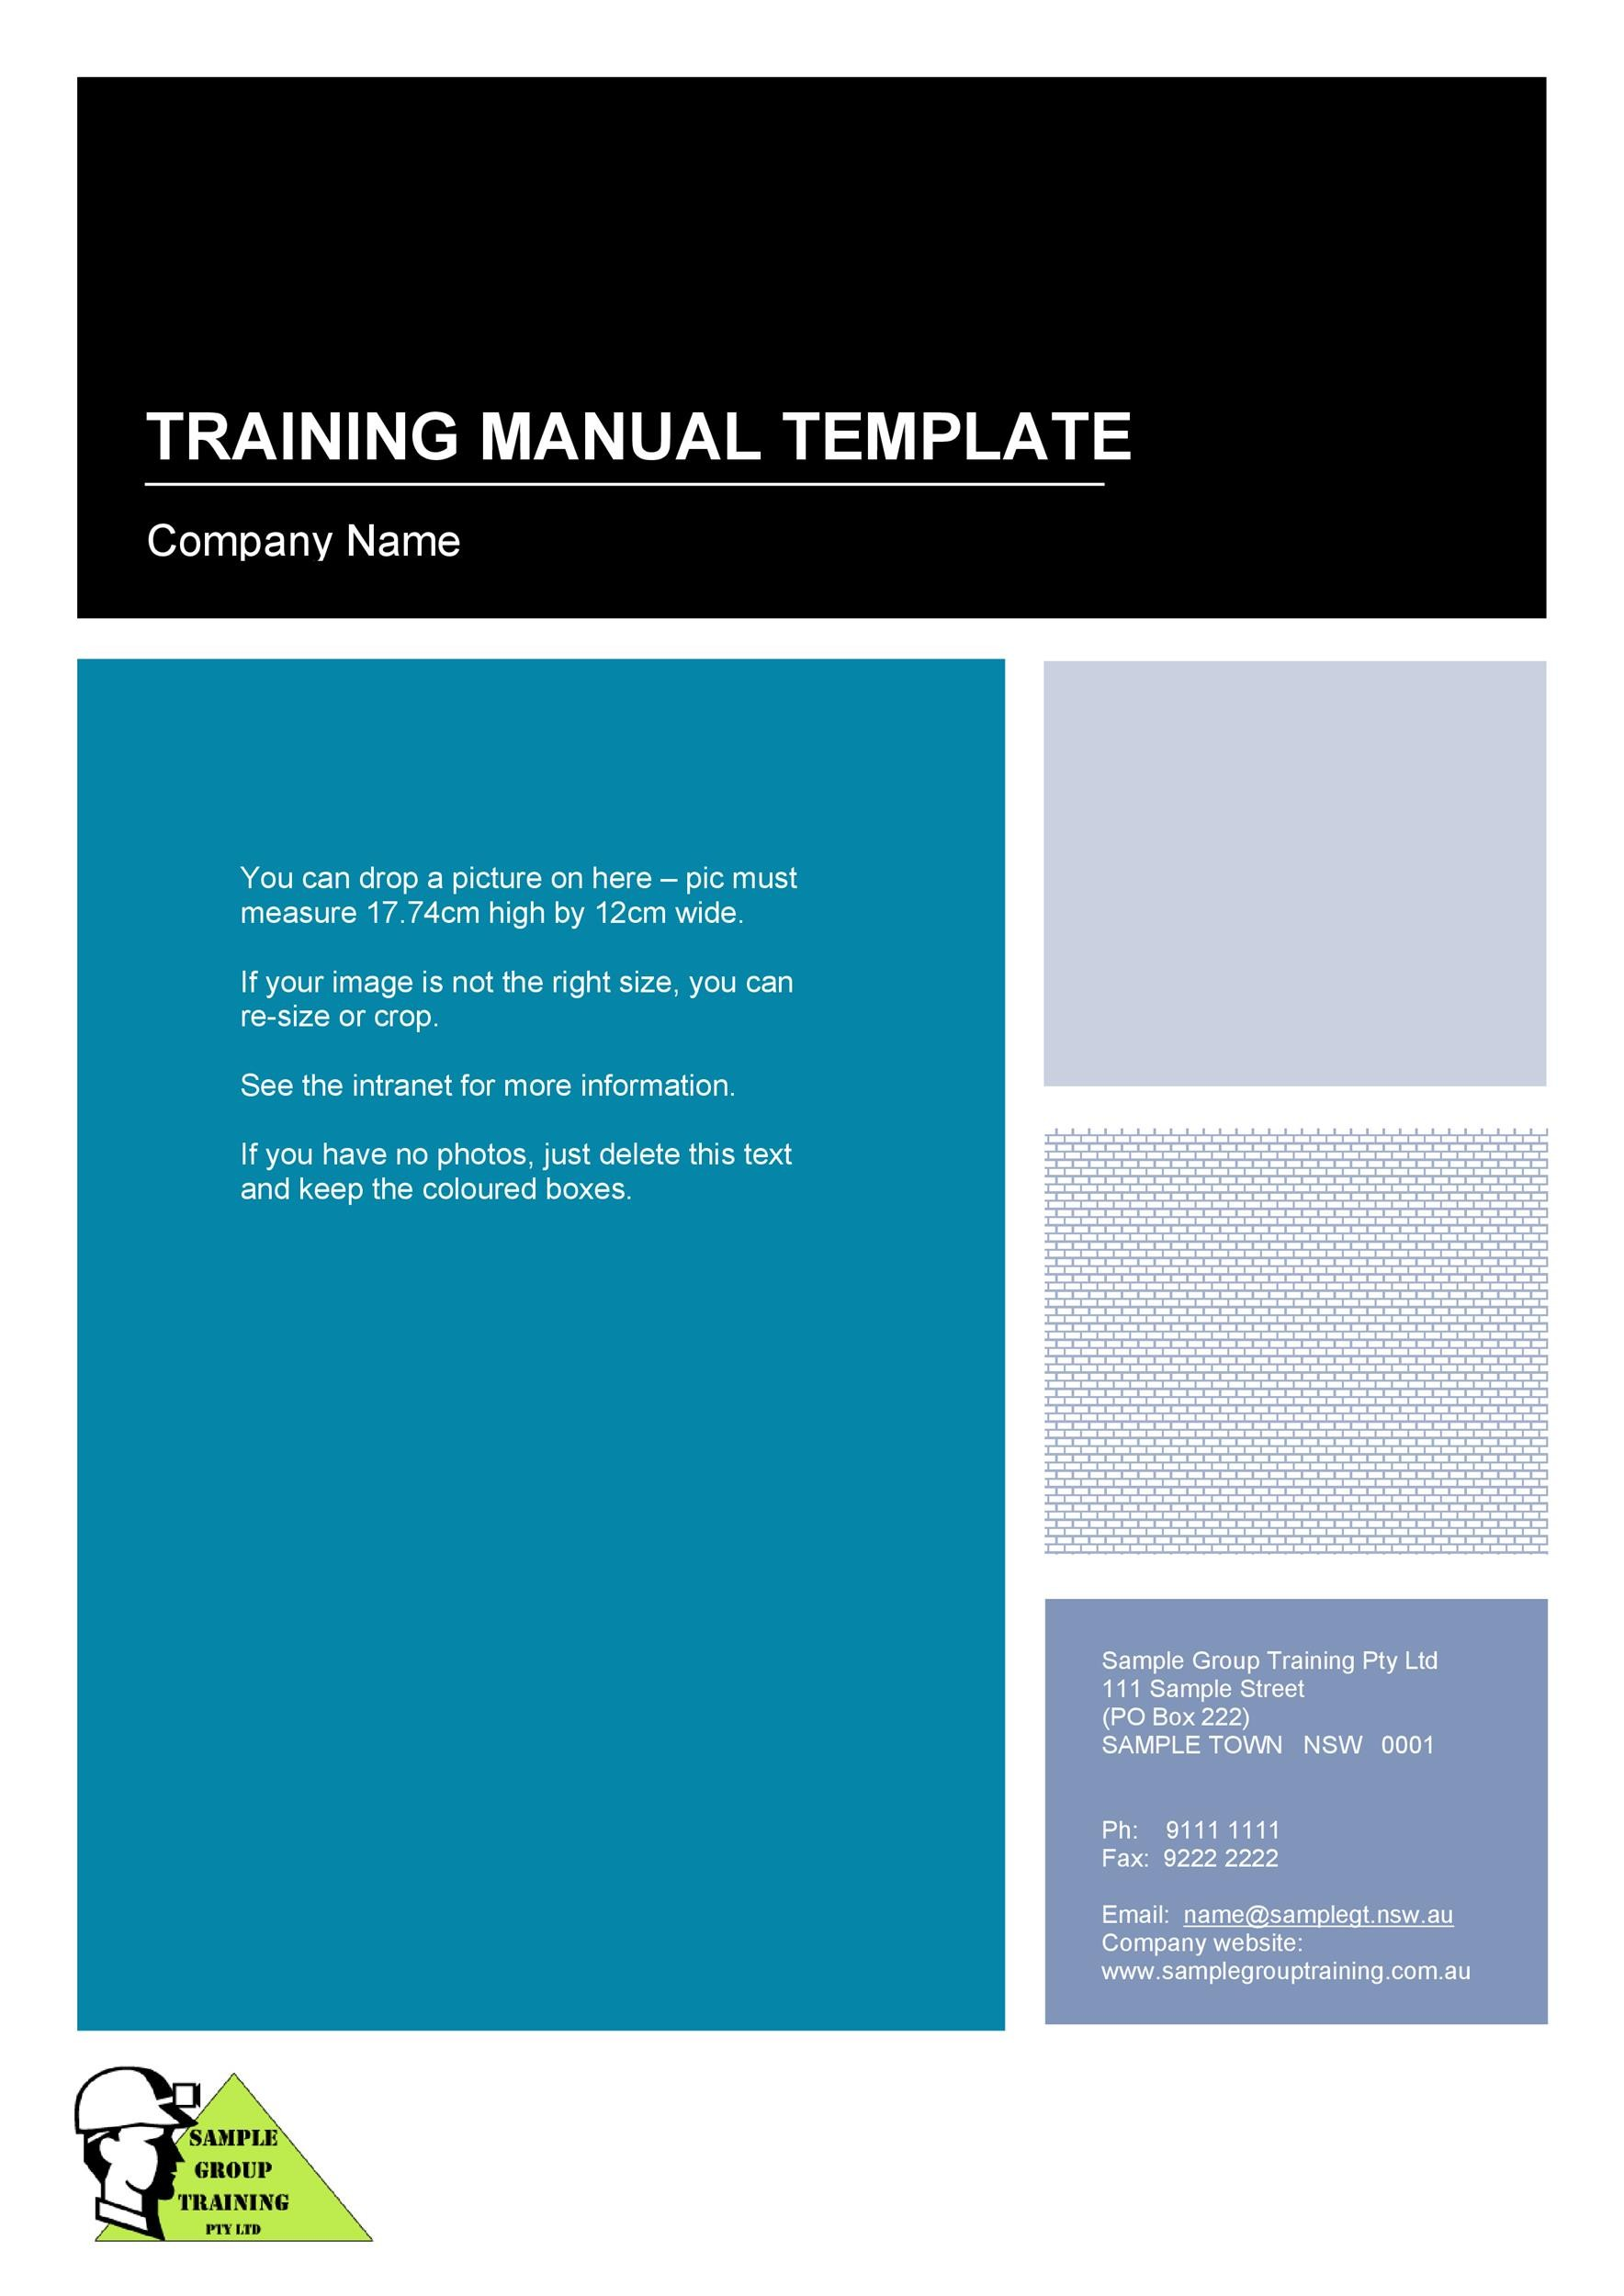 Amazing Free Training Manual Template 01